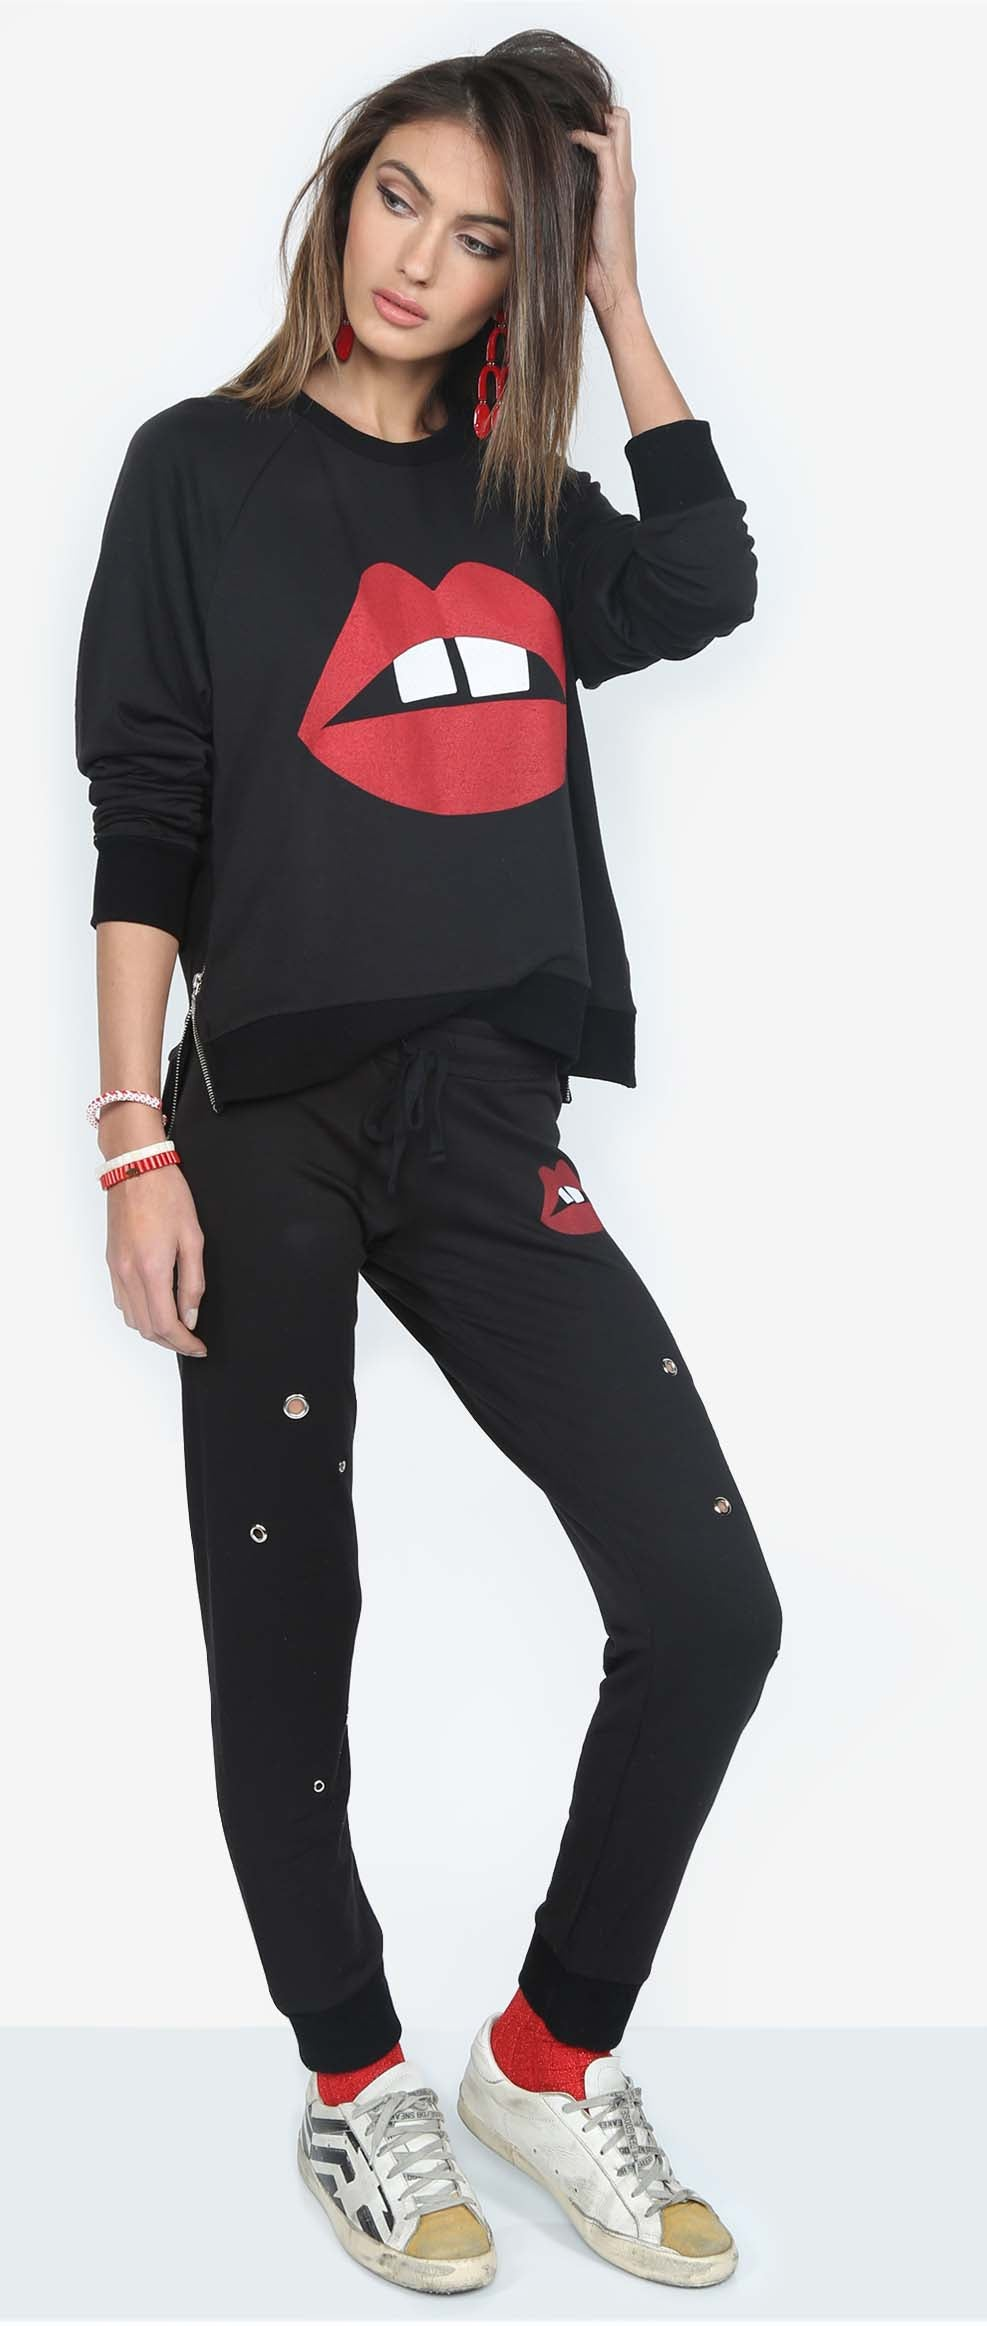 Jess Black Lounge Sweats with Gap Mouth Graphic and Silver Grommets